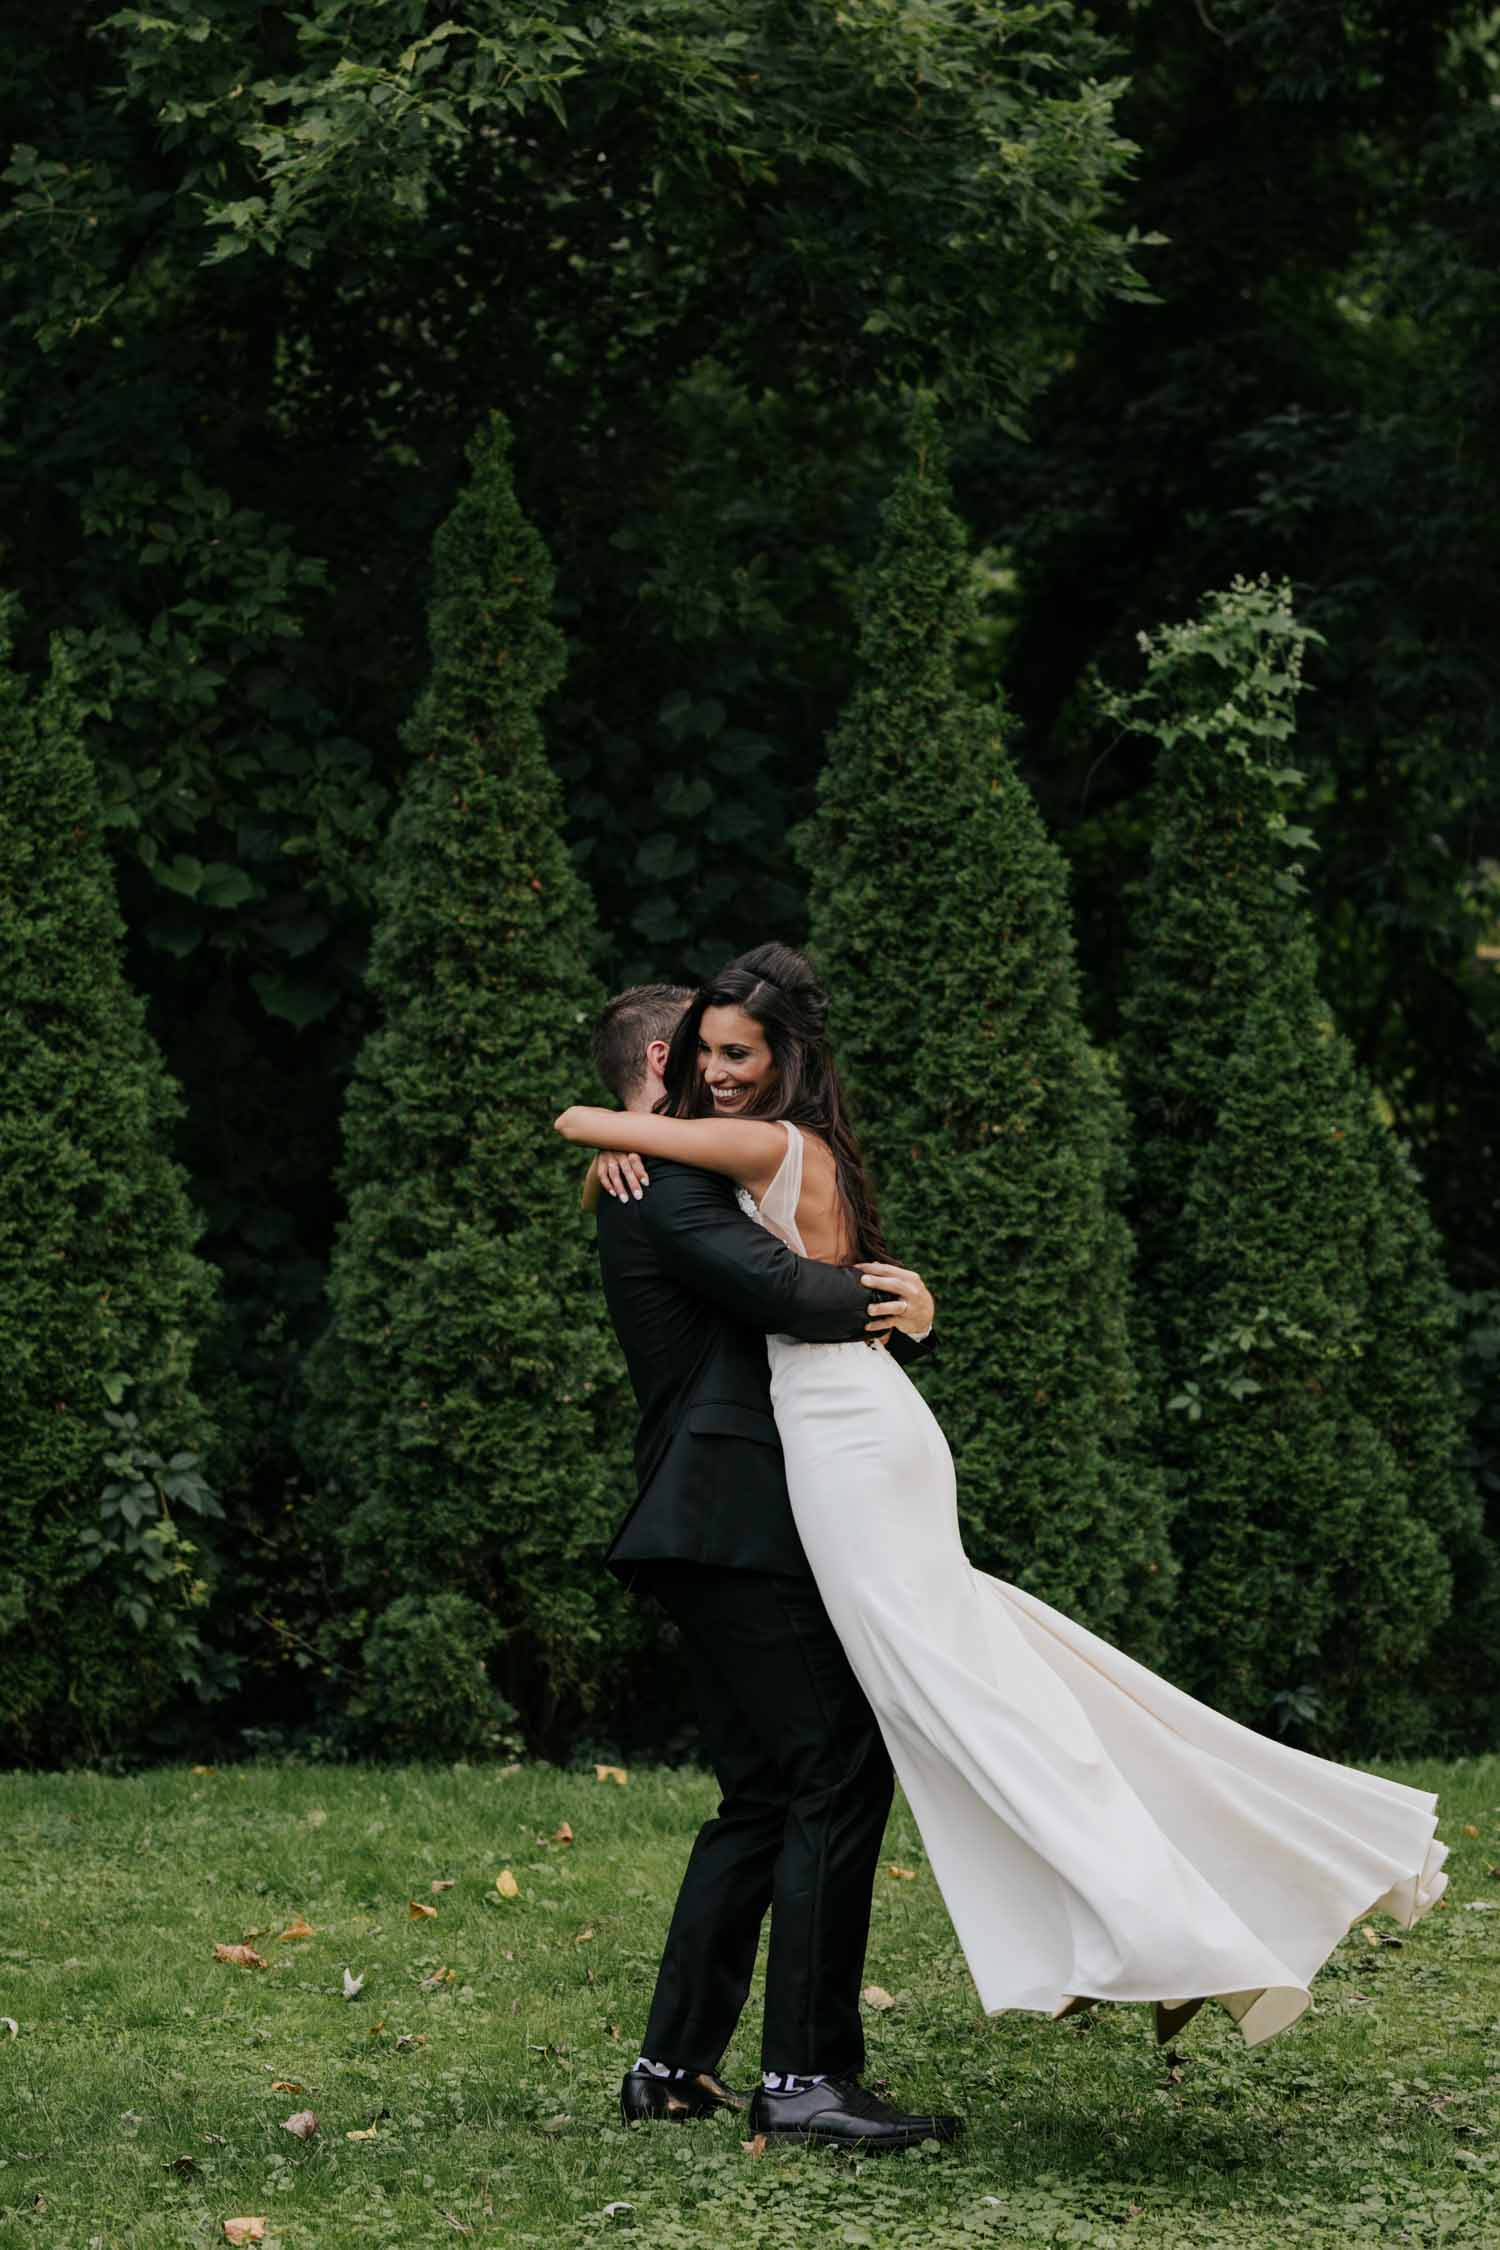 Non posed Vancouver wedding photographer at Madsen's Greenhouse wedding venue in Newmarket close to Toronto